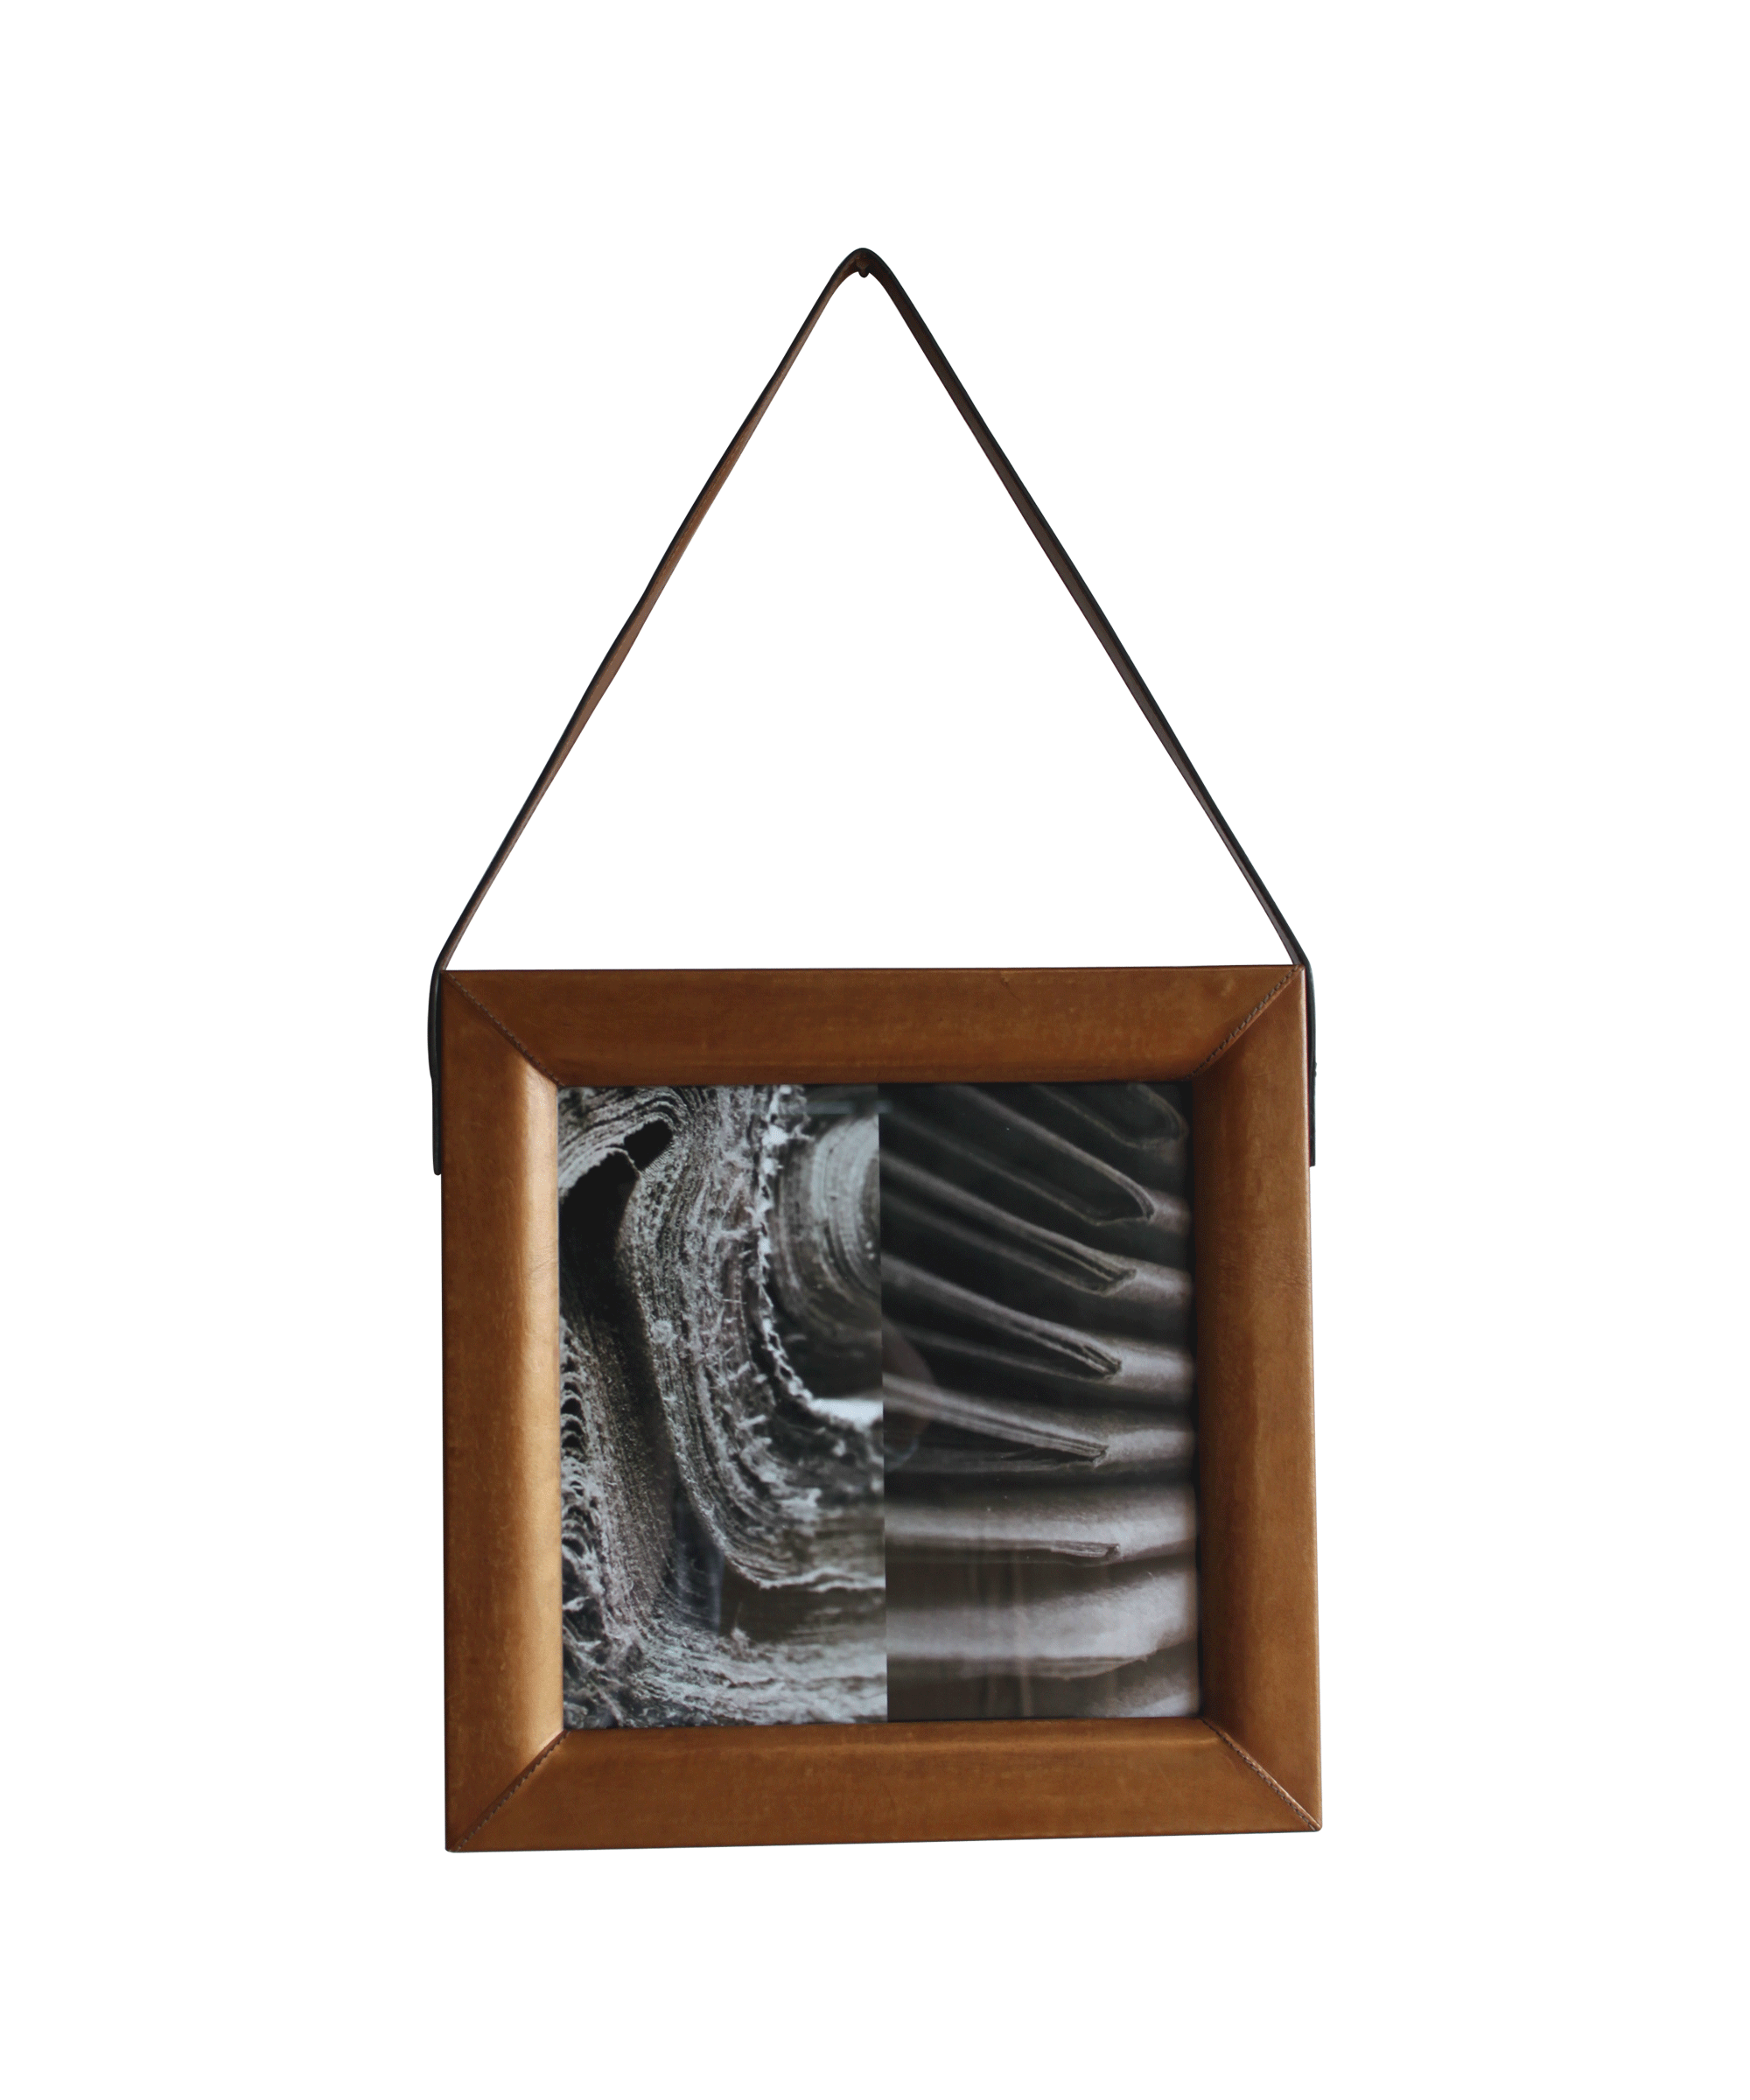 Wall Picture Frame Square – PortsideCafé